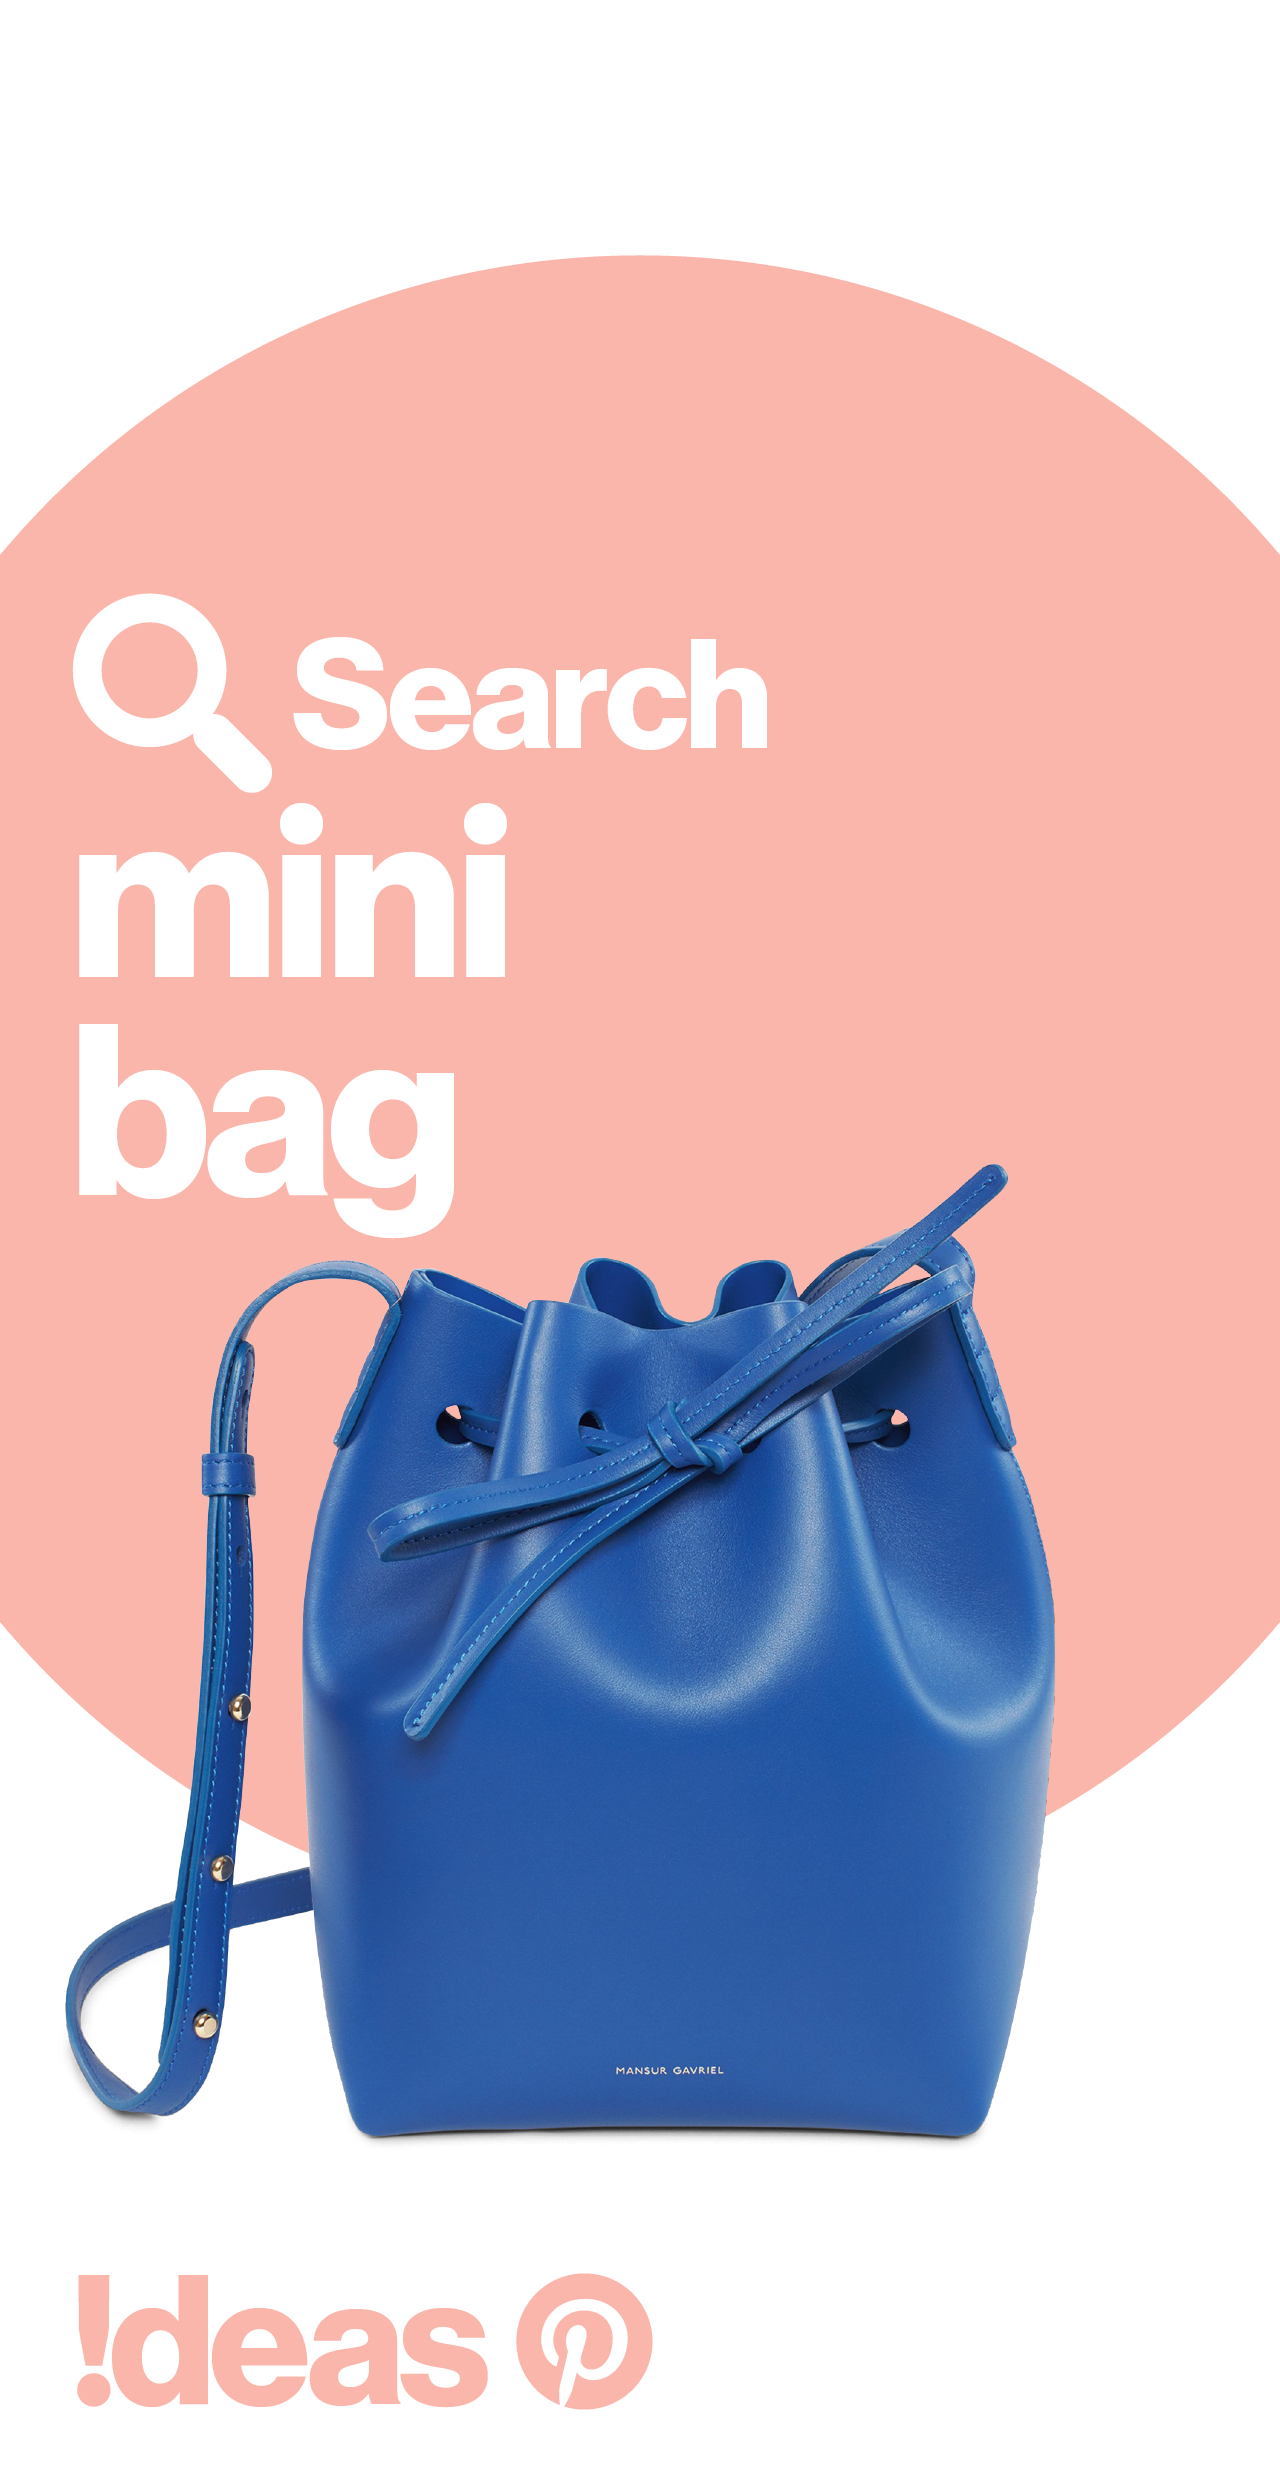 The Mini Bag Is On Purse Onality And Measures Up With Searches At